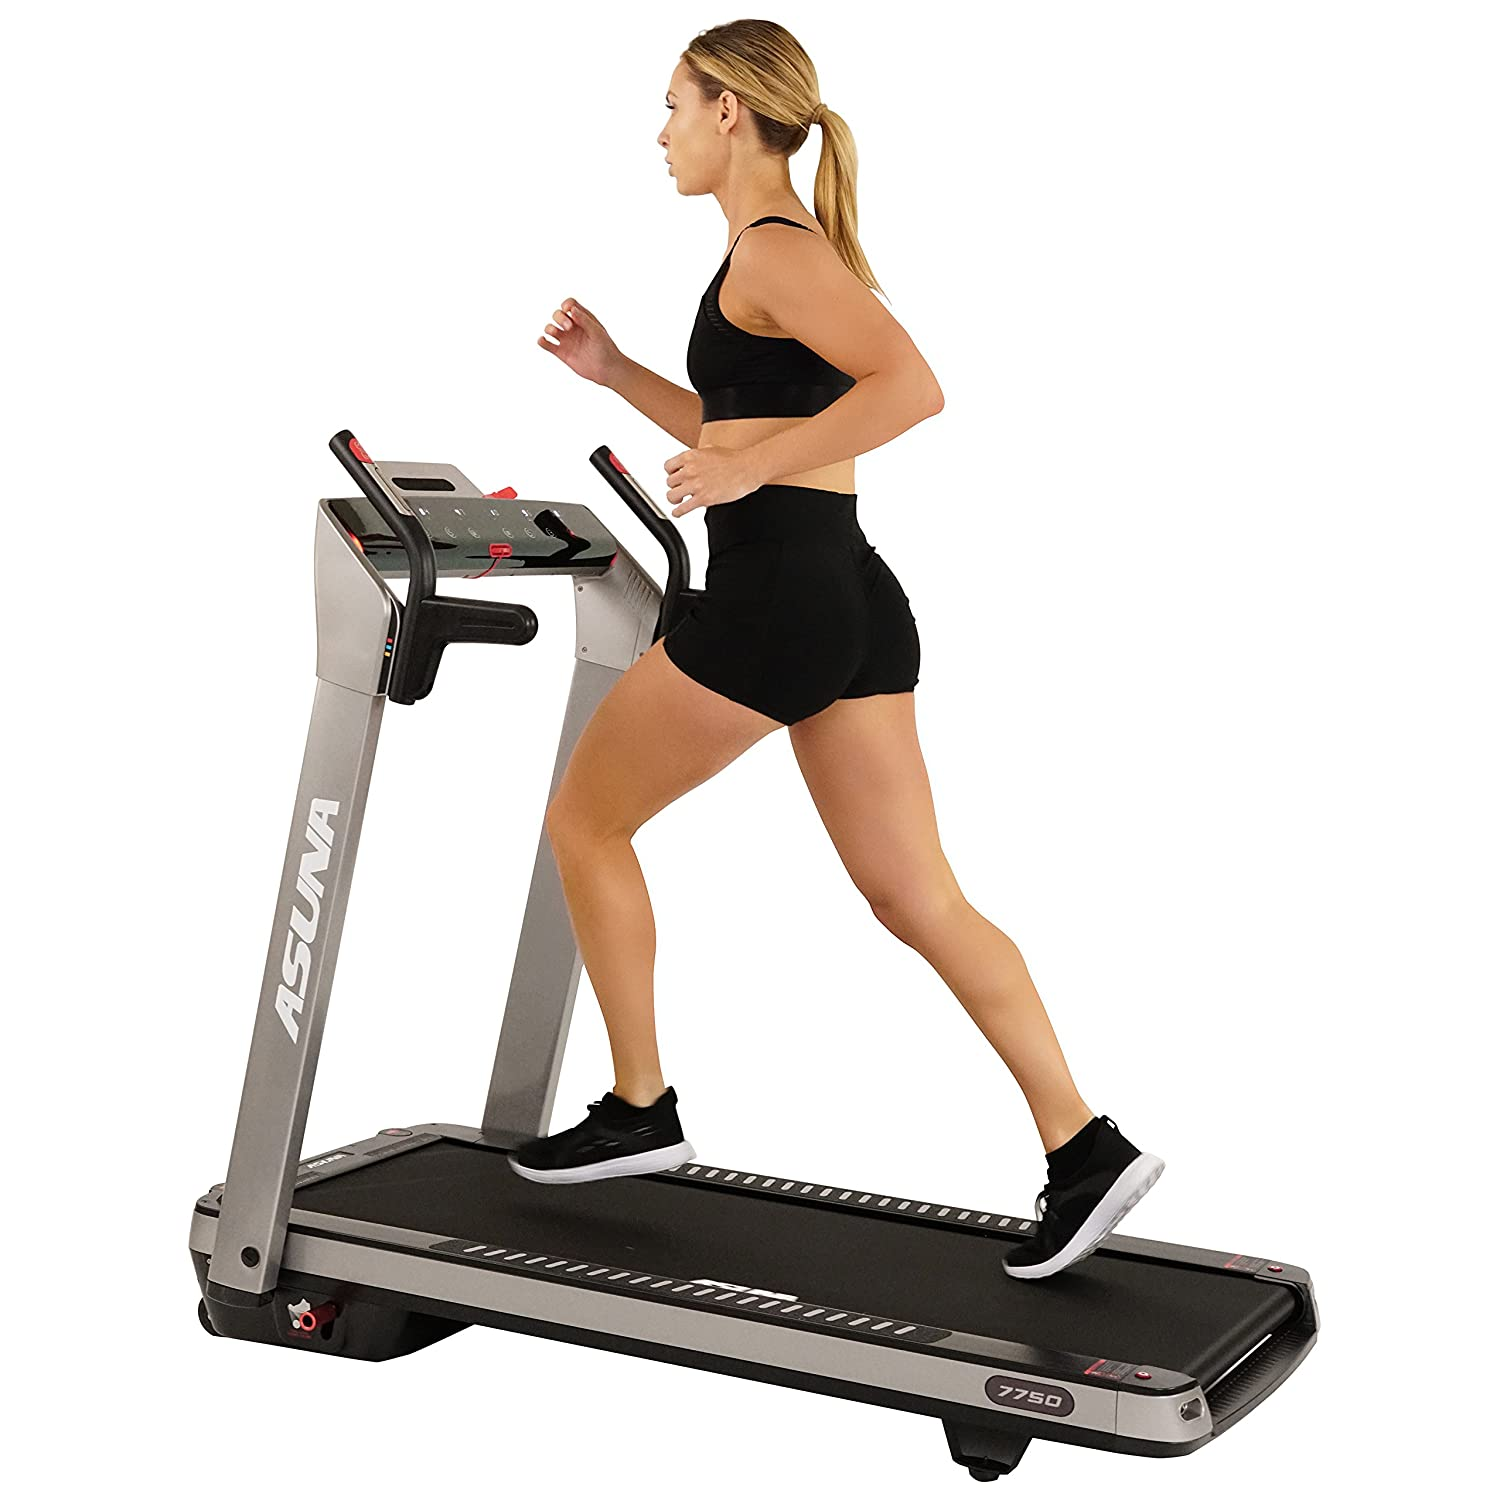 you will know several reasons why exercise does not work as expected